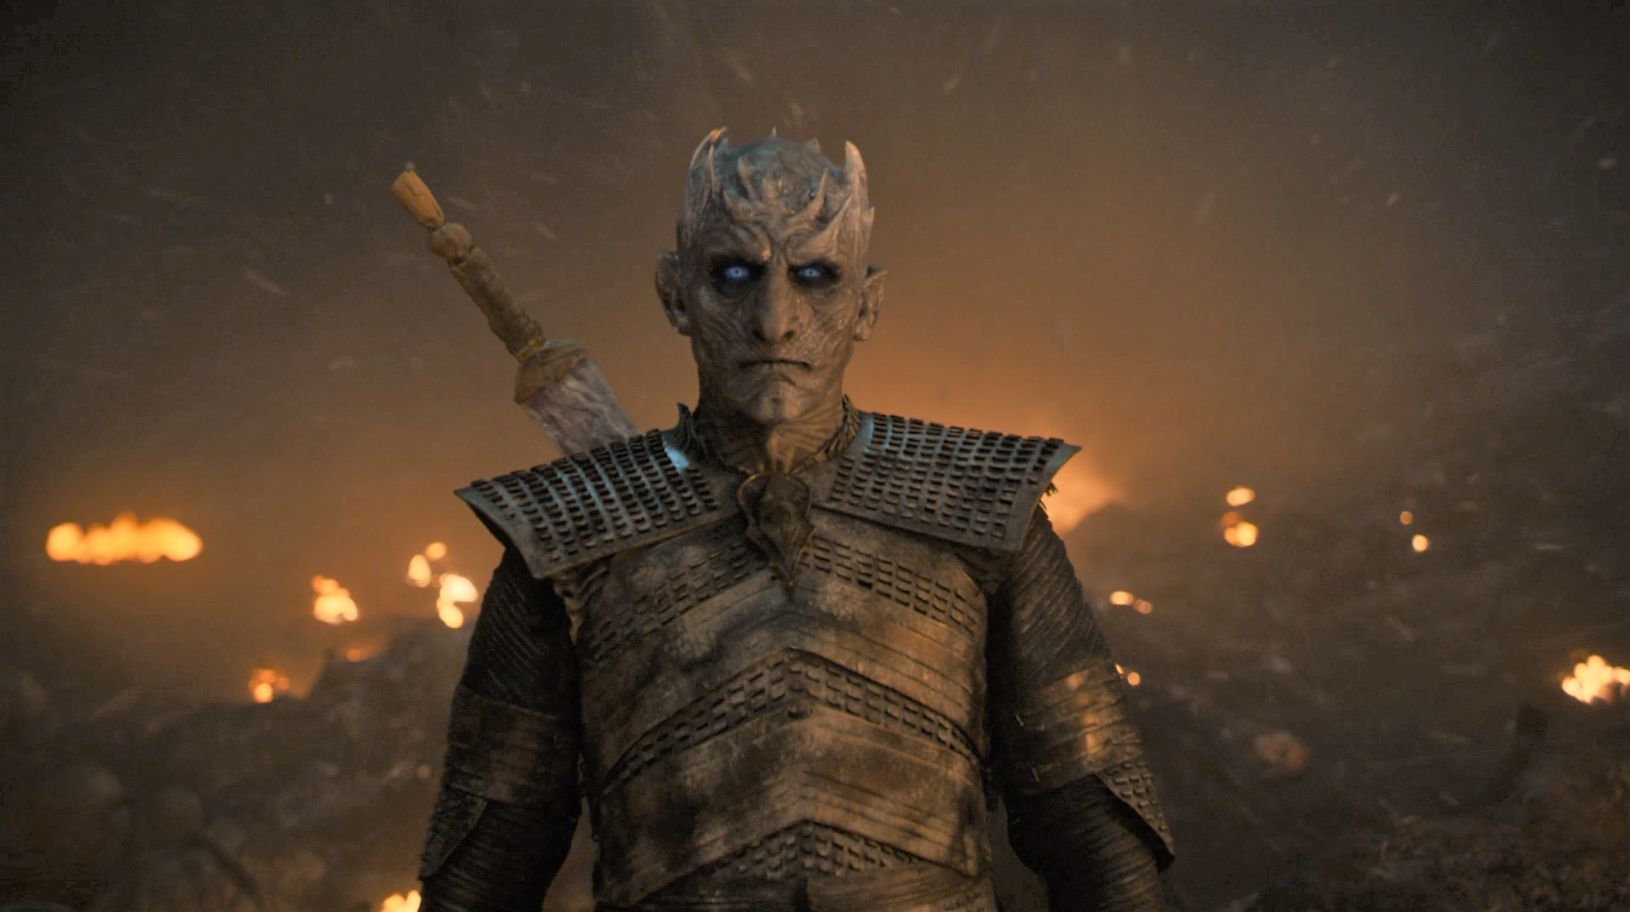 The Night King, Game of Thrones (2011-2019)